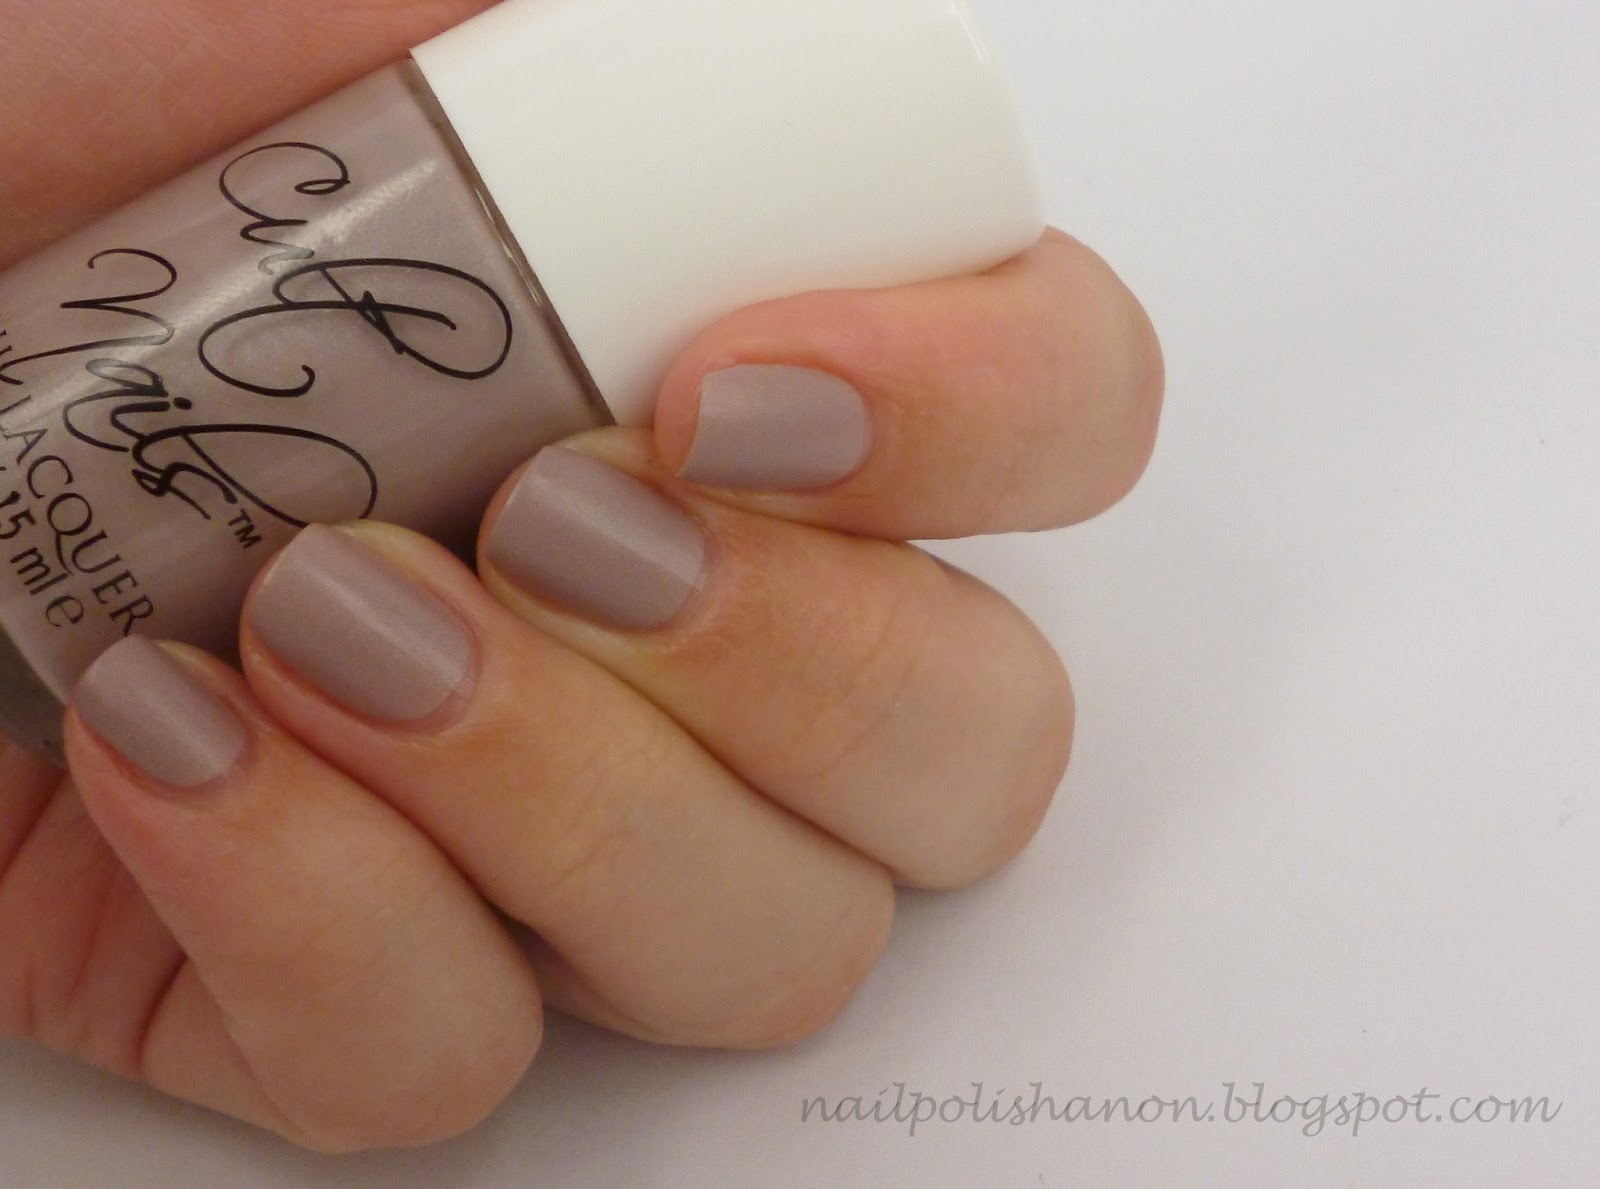 Nail Polish Anon: Cult Nails In The Garden Wax Finish Swatches